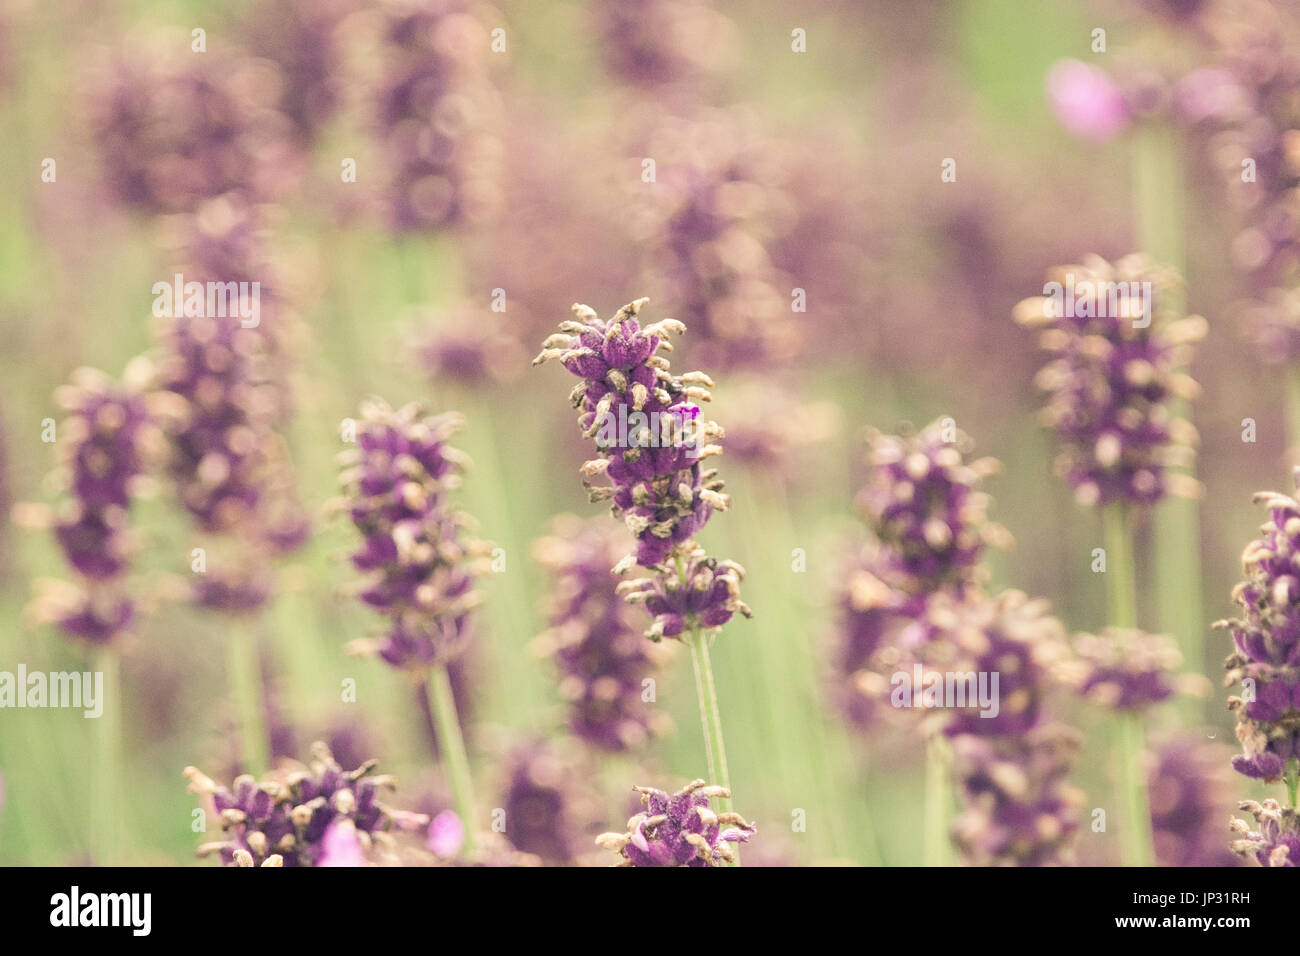 A Lavender field with vintage tones - Stock Image